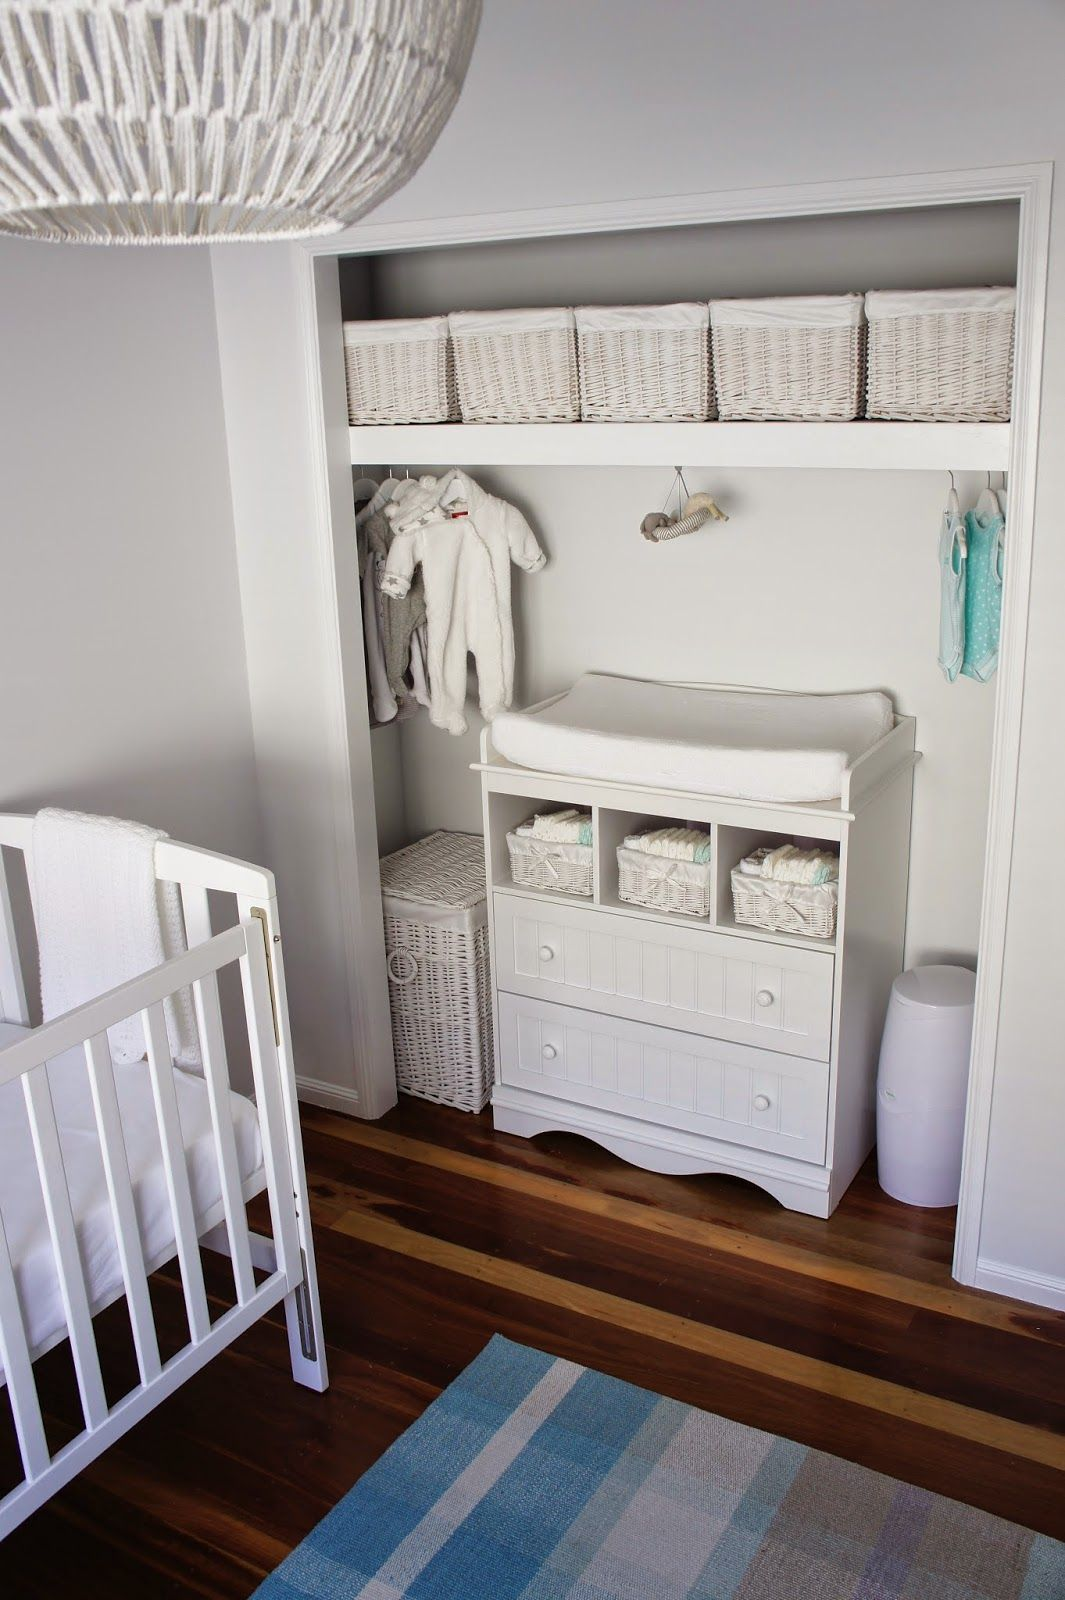 Beau Modern White Baby Nursery Ideas Above Laminate Wood Floor Have Small White  Racks For Clothes Realizing Baby Nursery Ideas On Budget Bedroom Camo For A  Boy ...